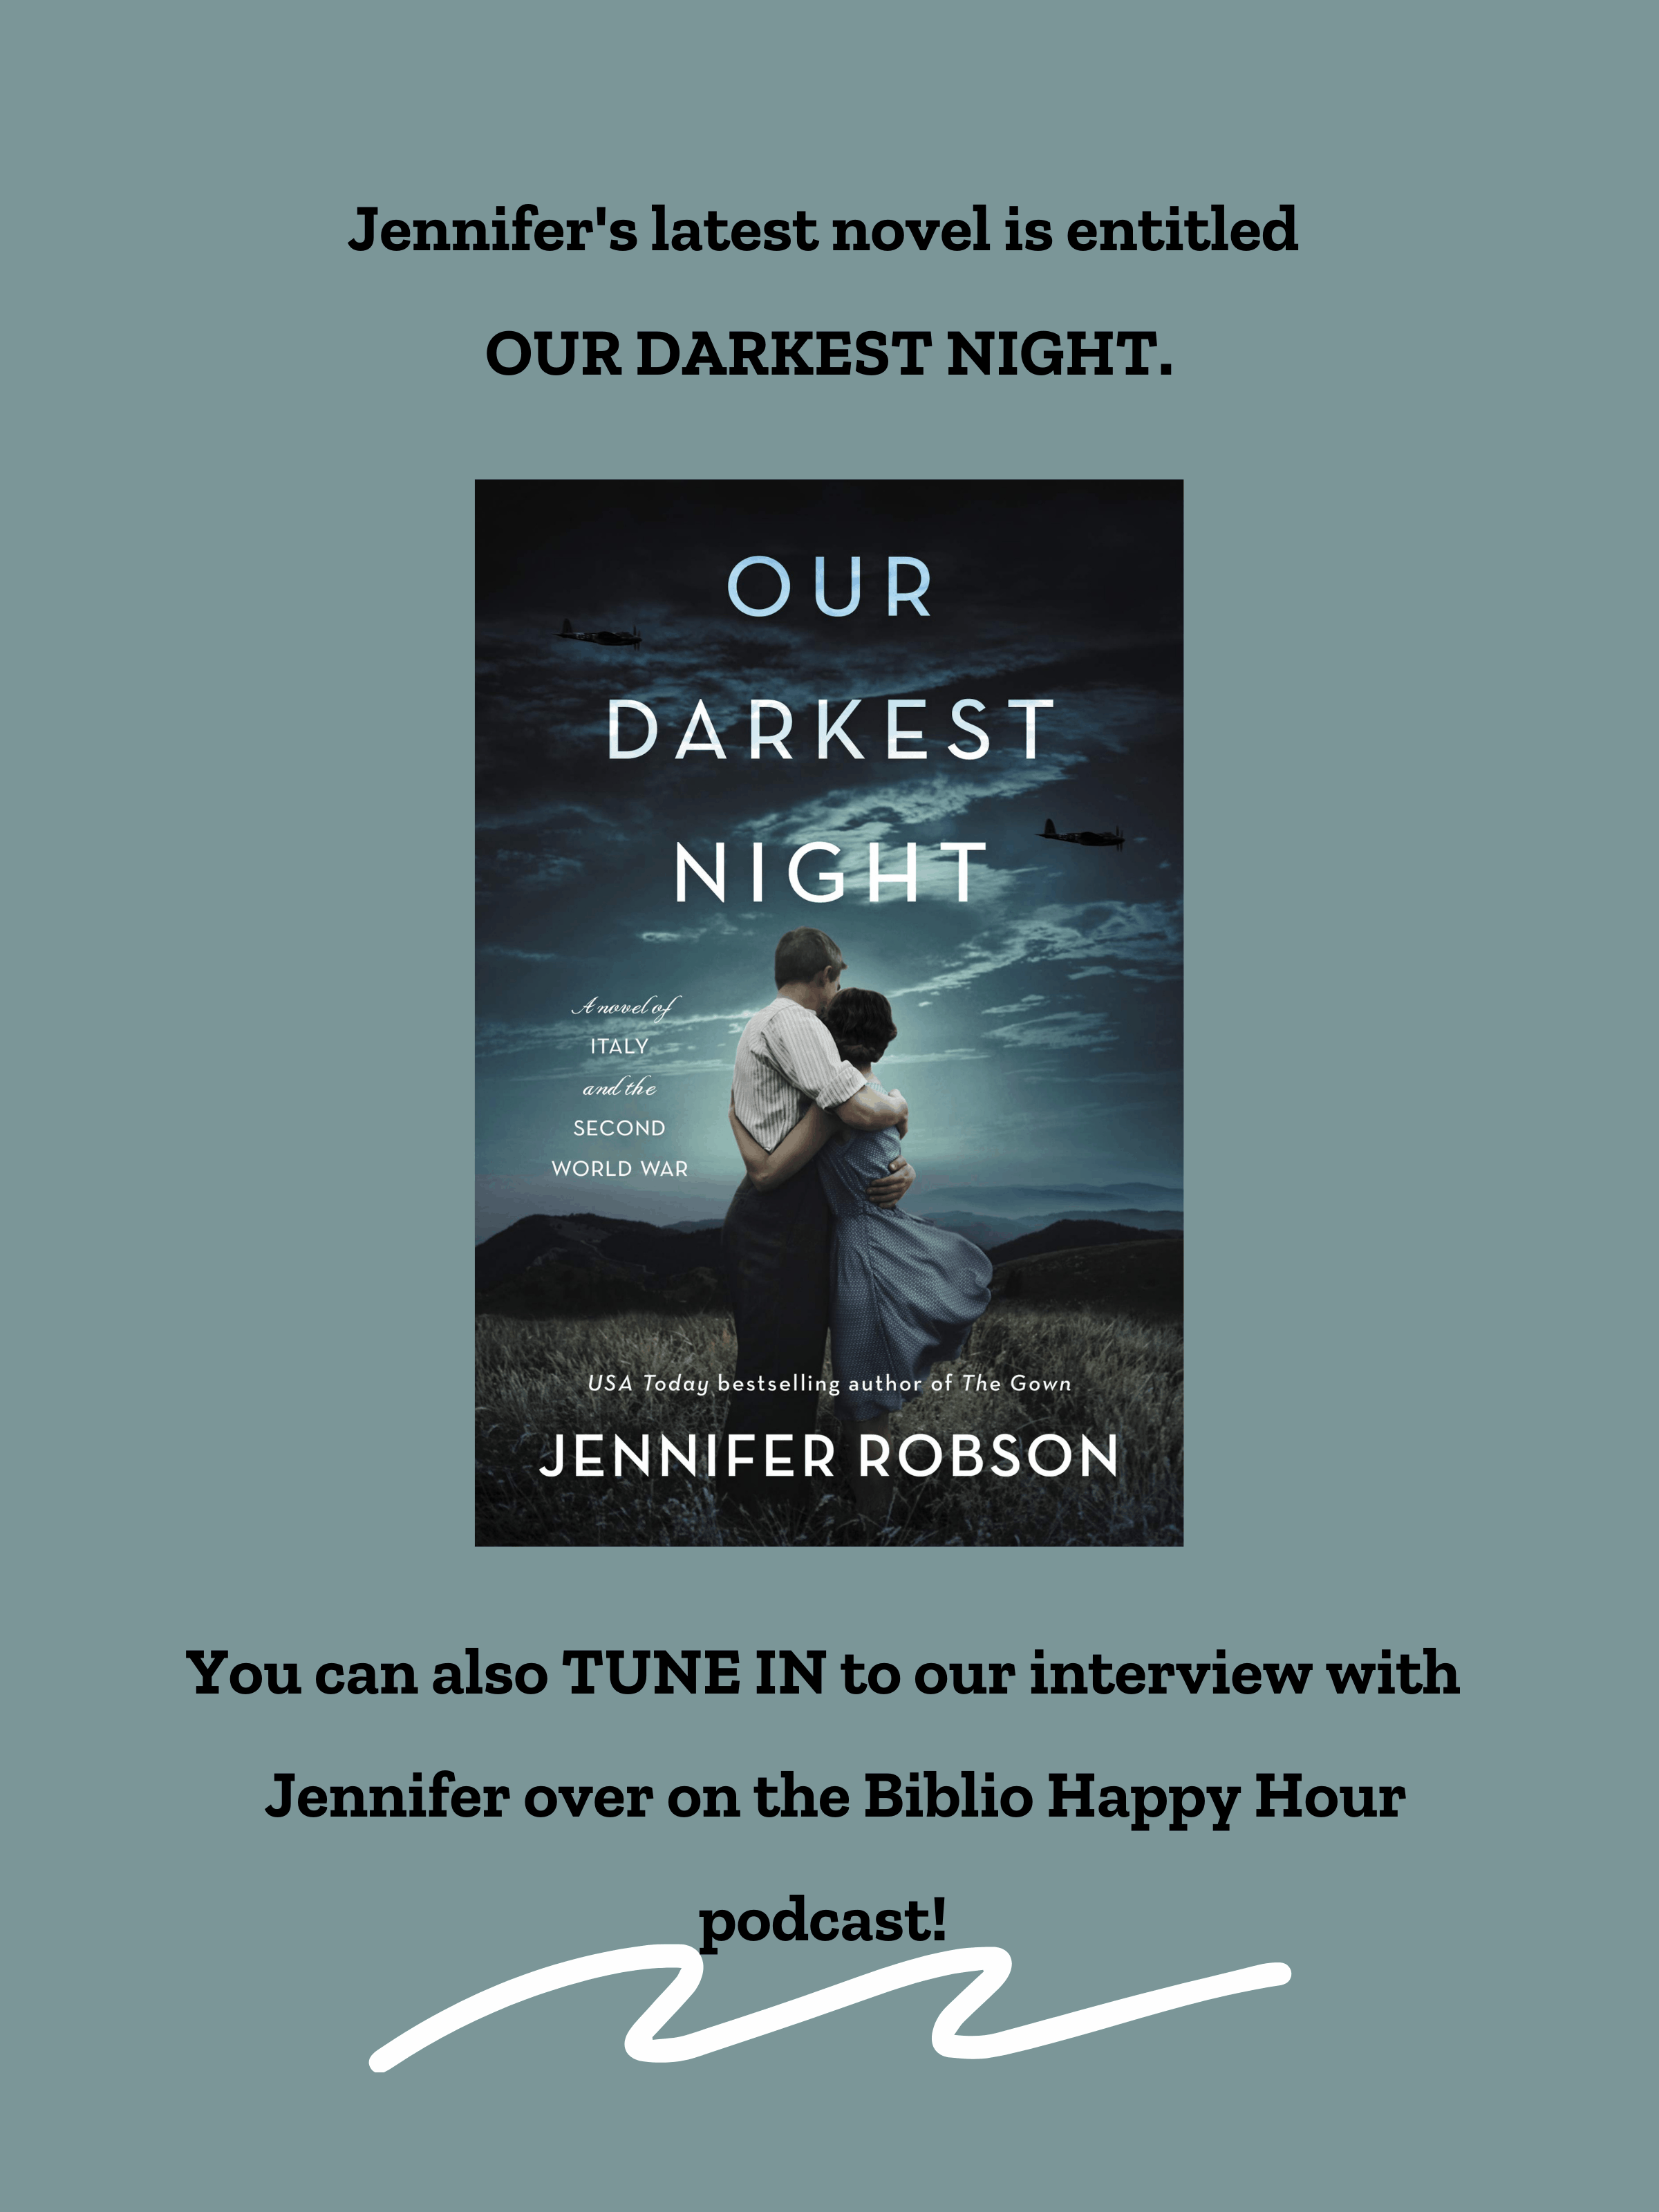 Our Darkest Night by Jennifer Robson